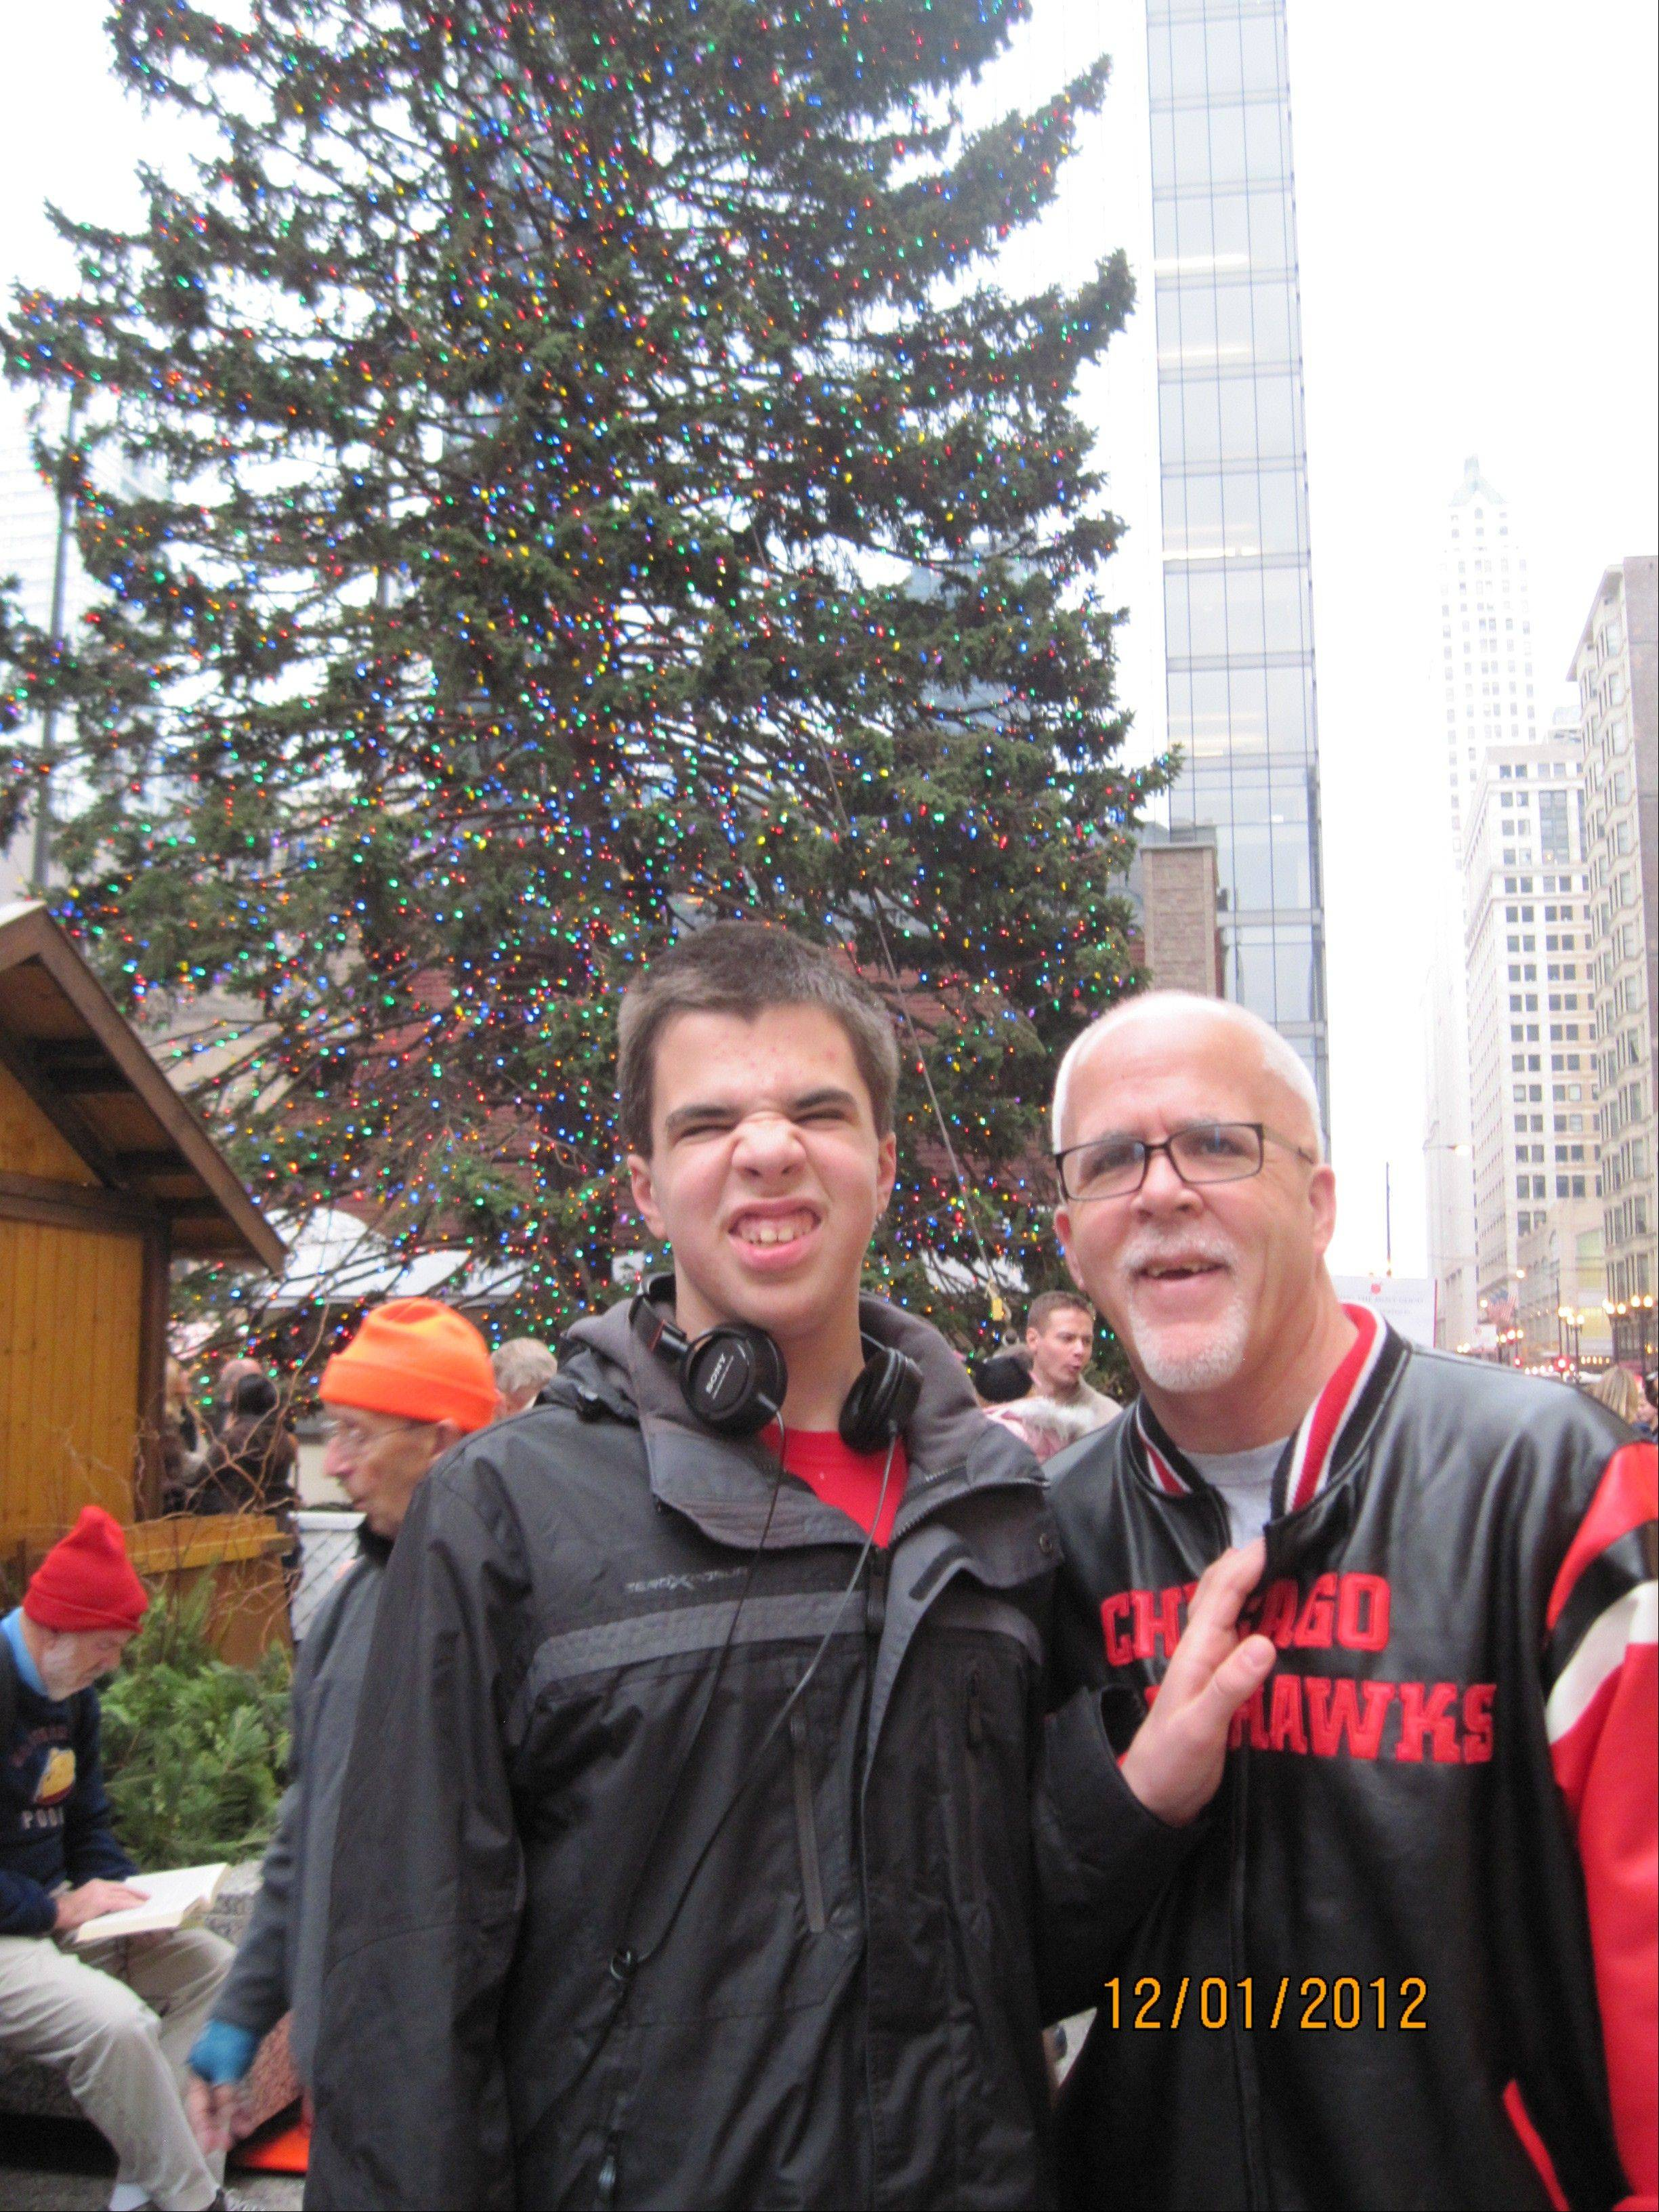 Mike Baker of Schaumburg and his son, Bryan, 14.